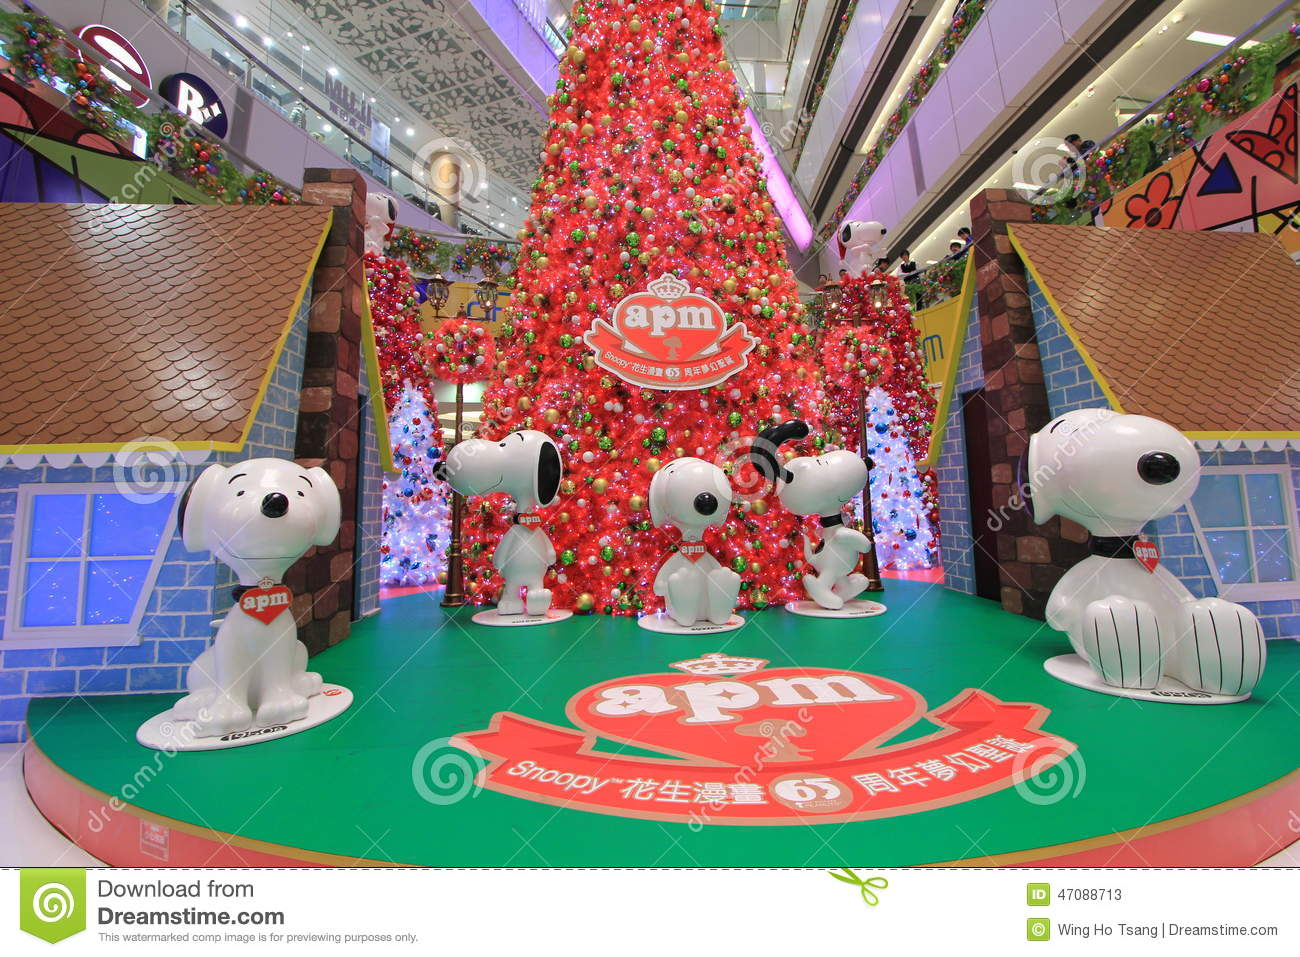 snoopy christmas decoration in apm hong kong